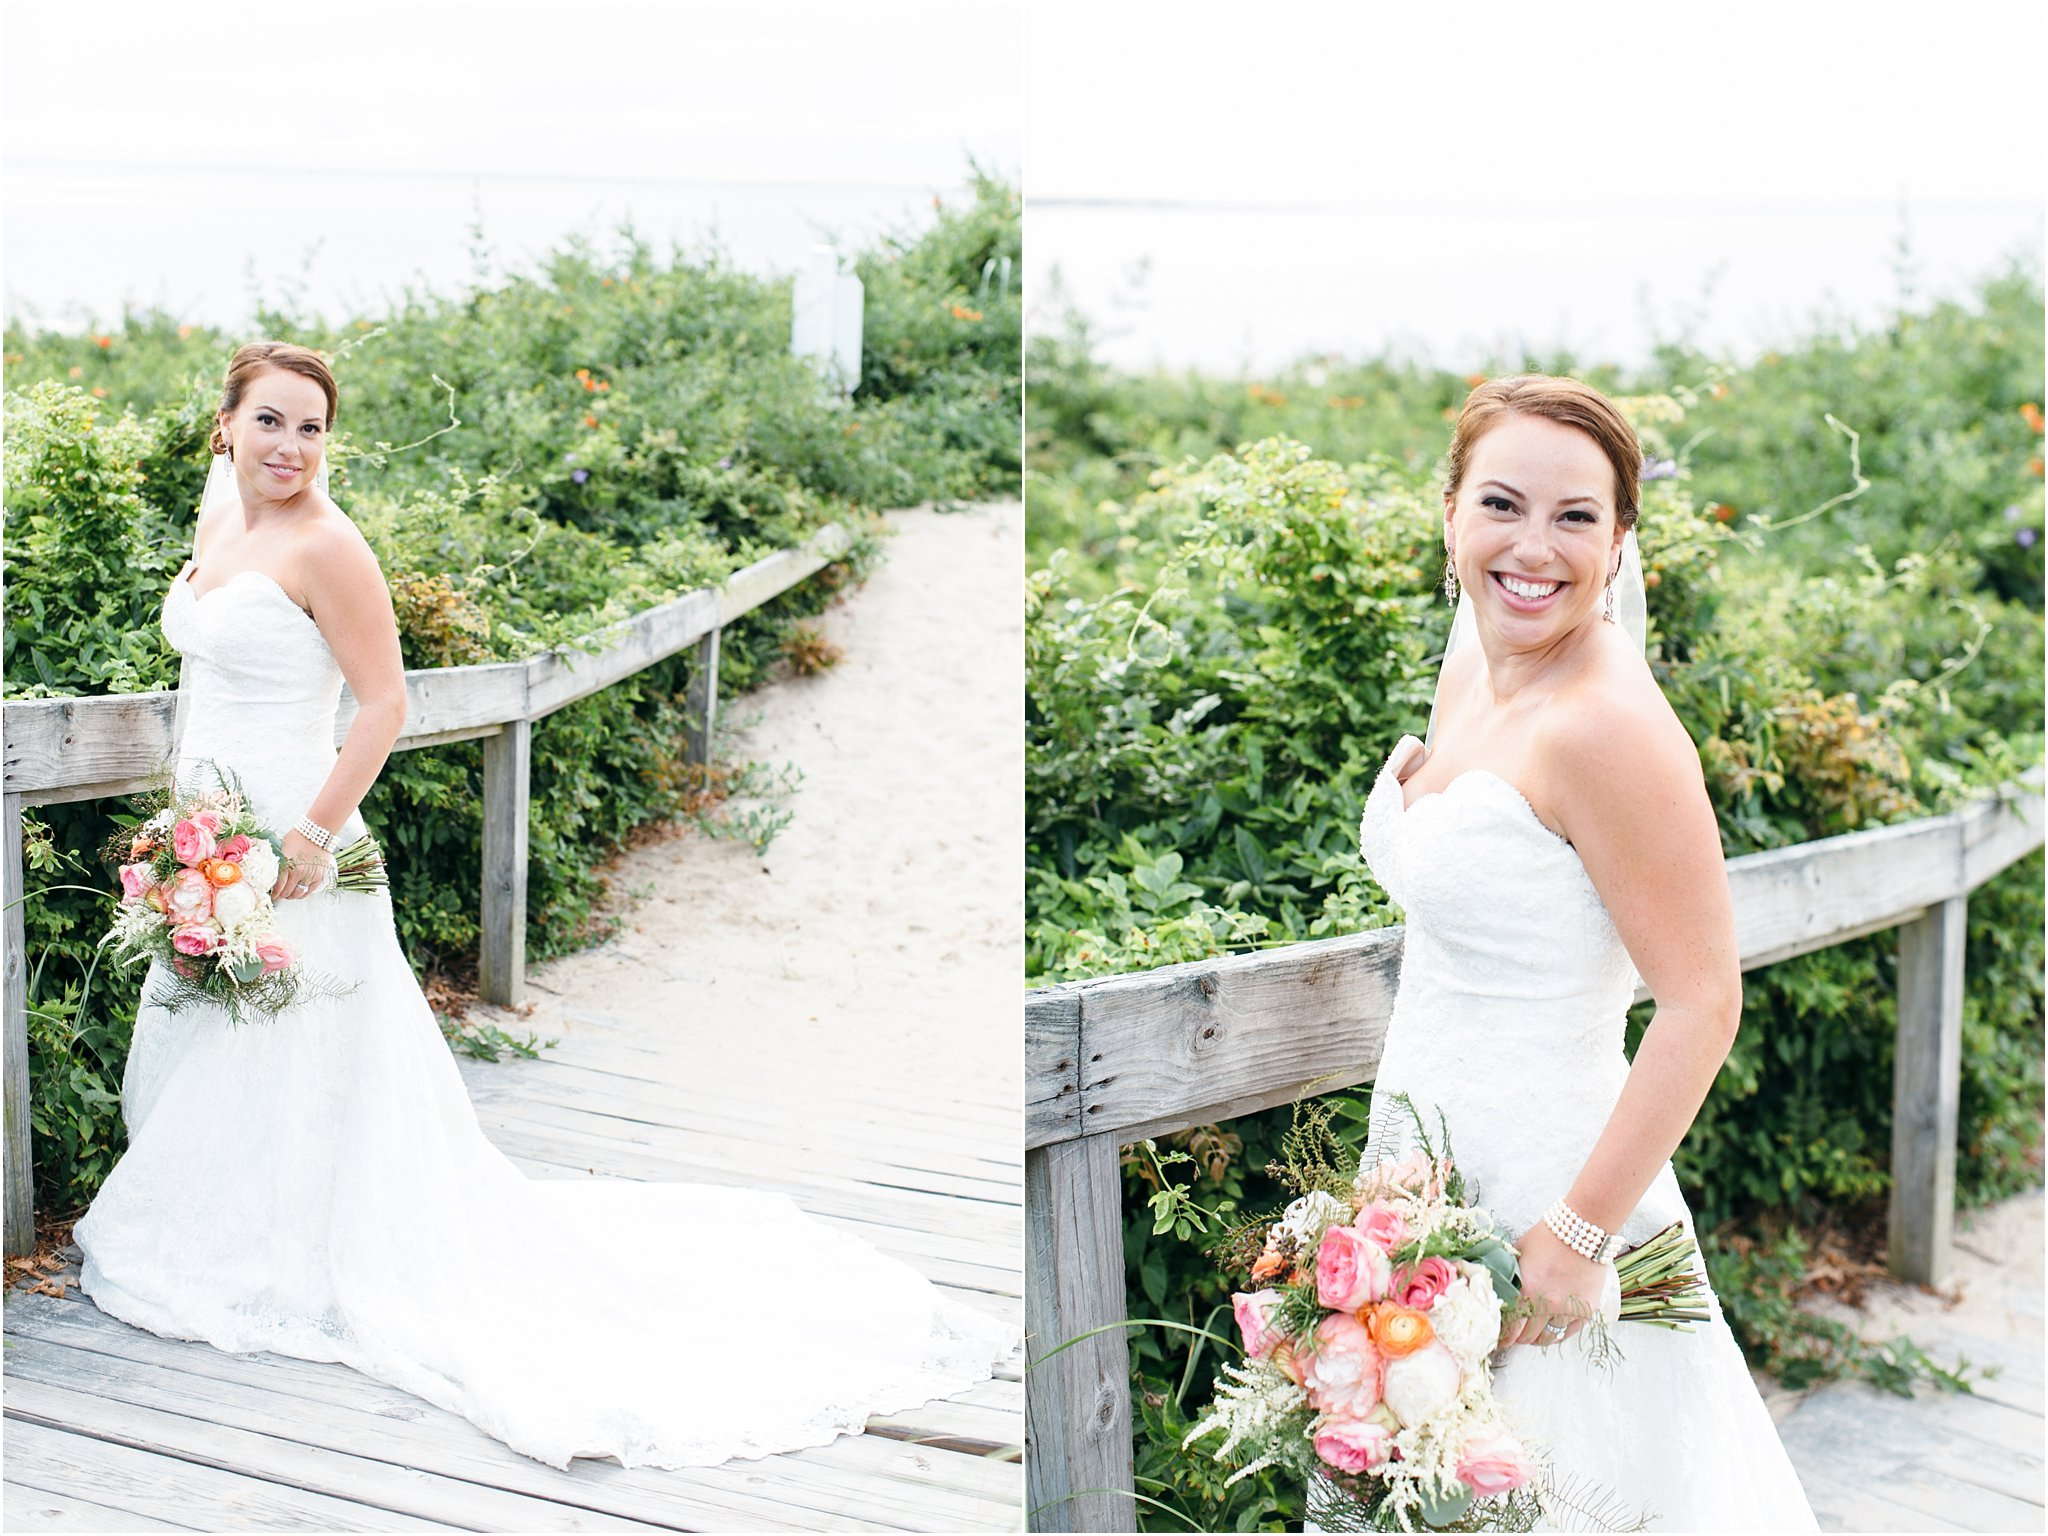 jessica_ryan_photography_wedding_photography_virginiabeach_virginia_candid_authentic_wedding_portraits_marina_shores_yacht_club_chesapeake_bay_1898